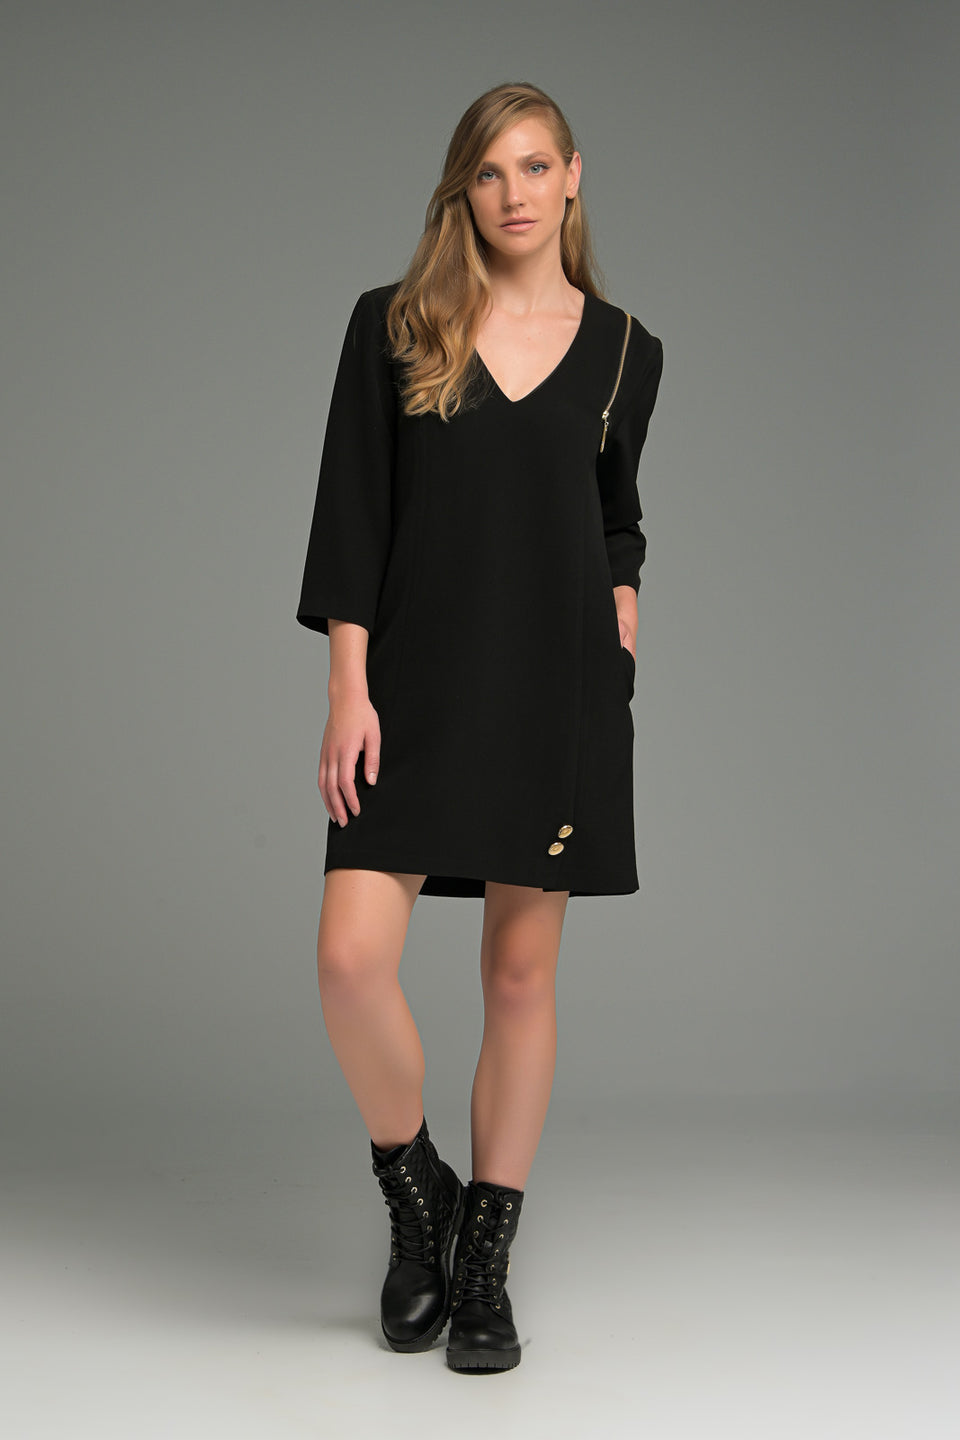 A-LINE DRESS WITH DECORATIVE ZIPPER  AND 3/4 SLEEVE A-LINE DRESS WITH DECORATIVE ZIPPER  AND 3/4 SLEEVE